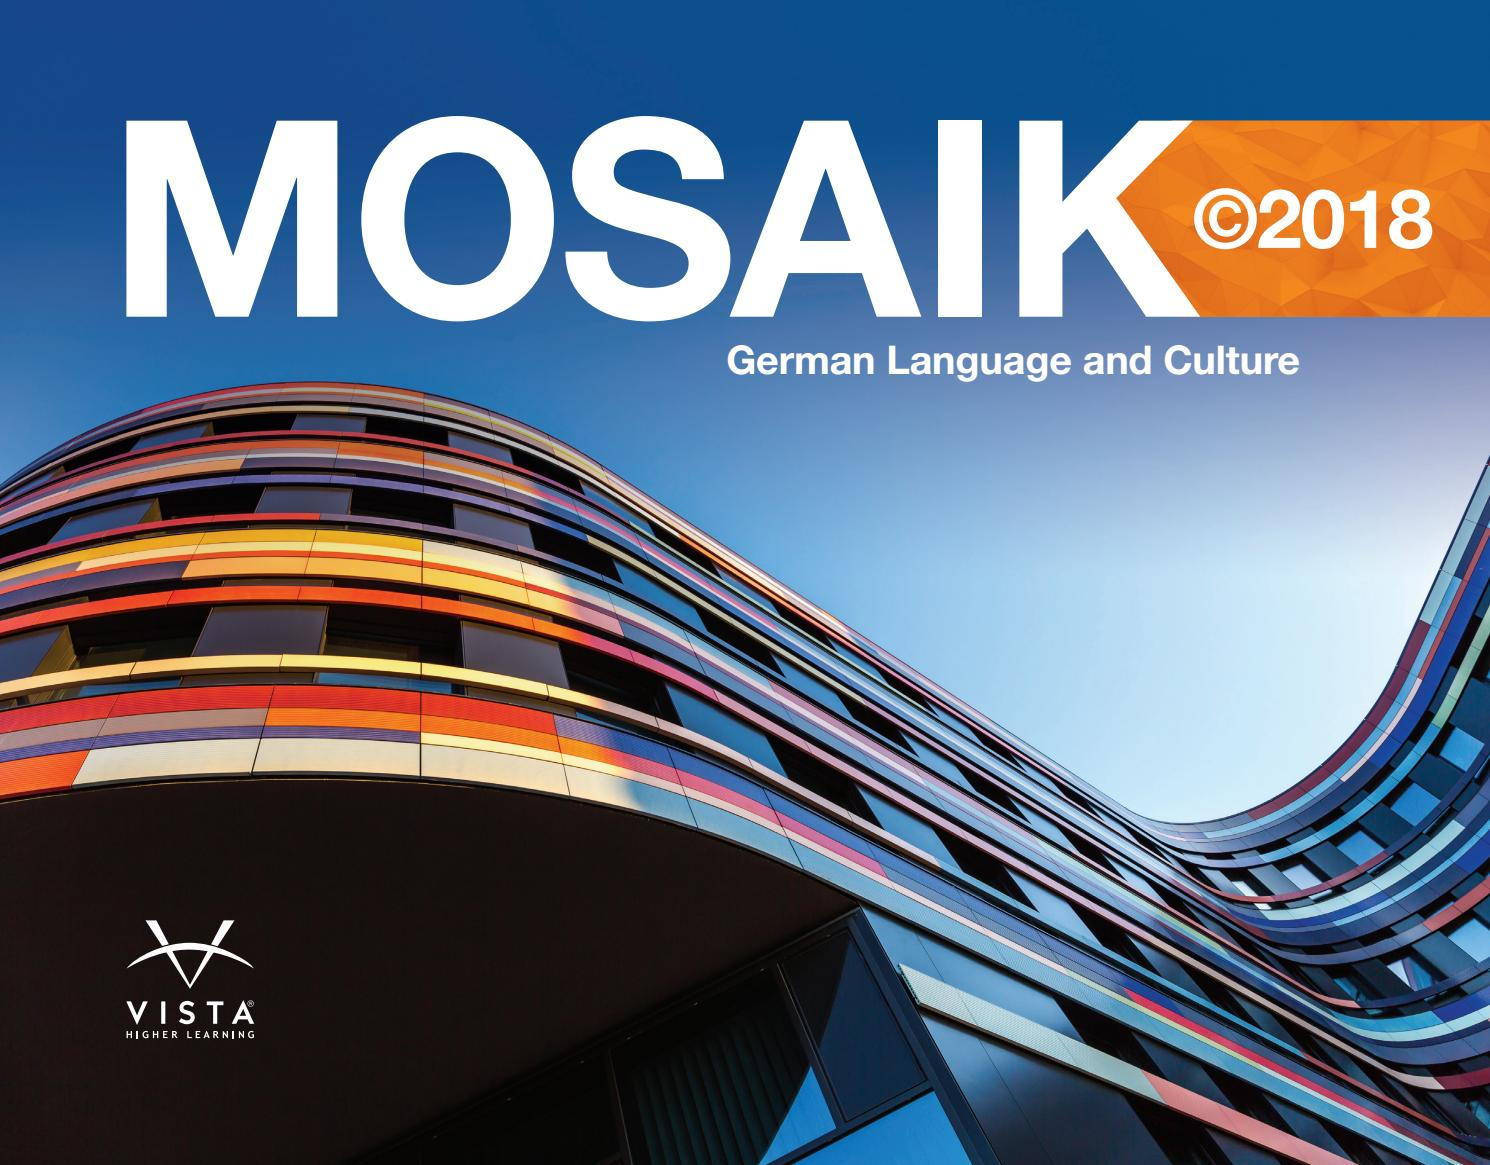 Mosaik 2018 brochure by Vista Higher Learning - issuu